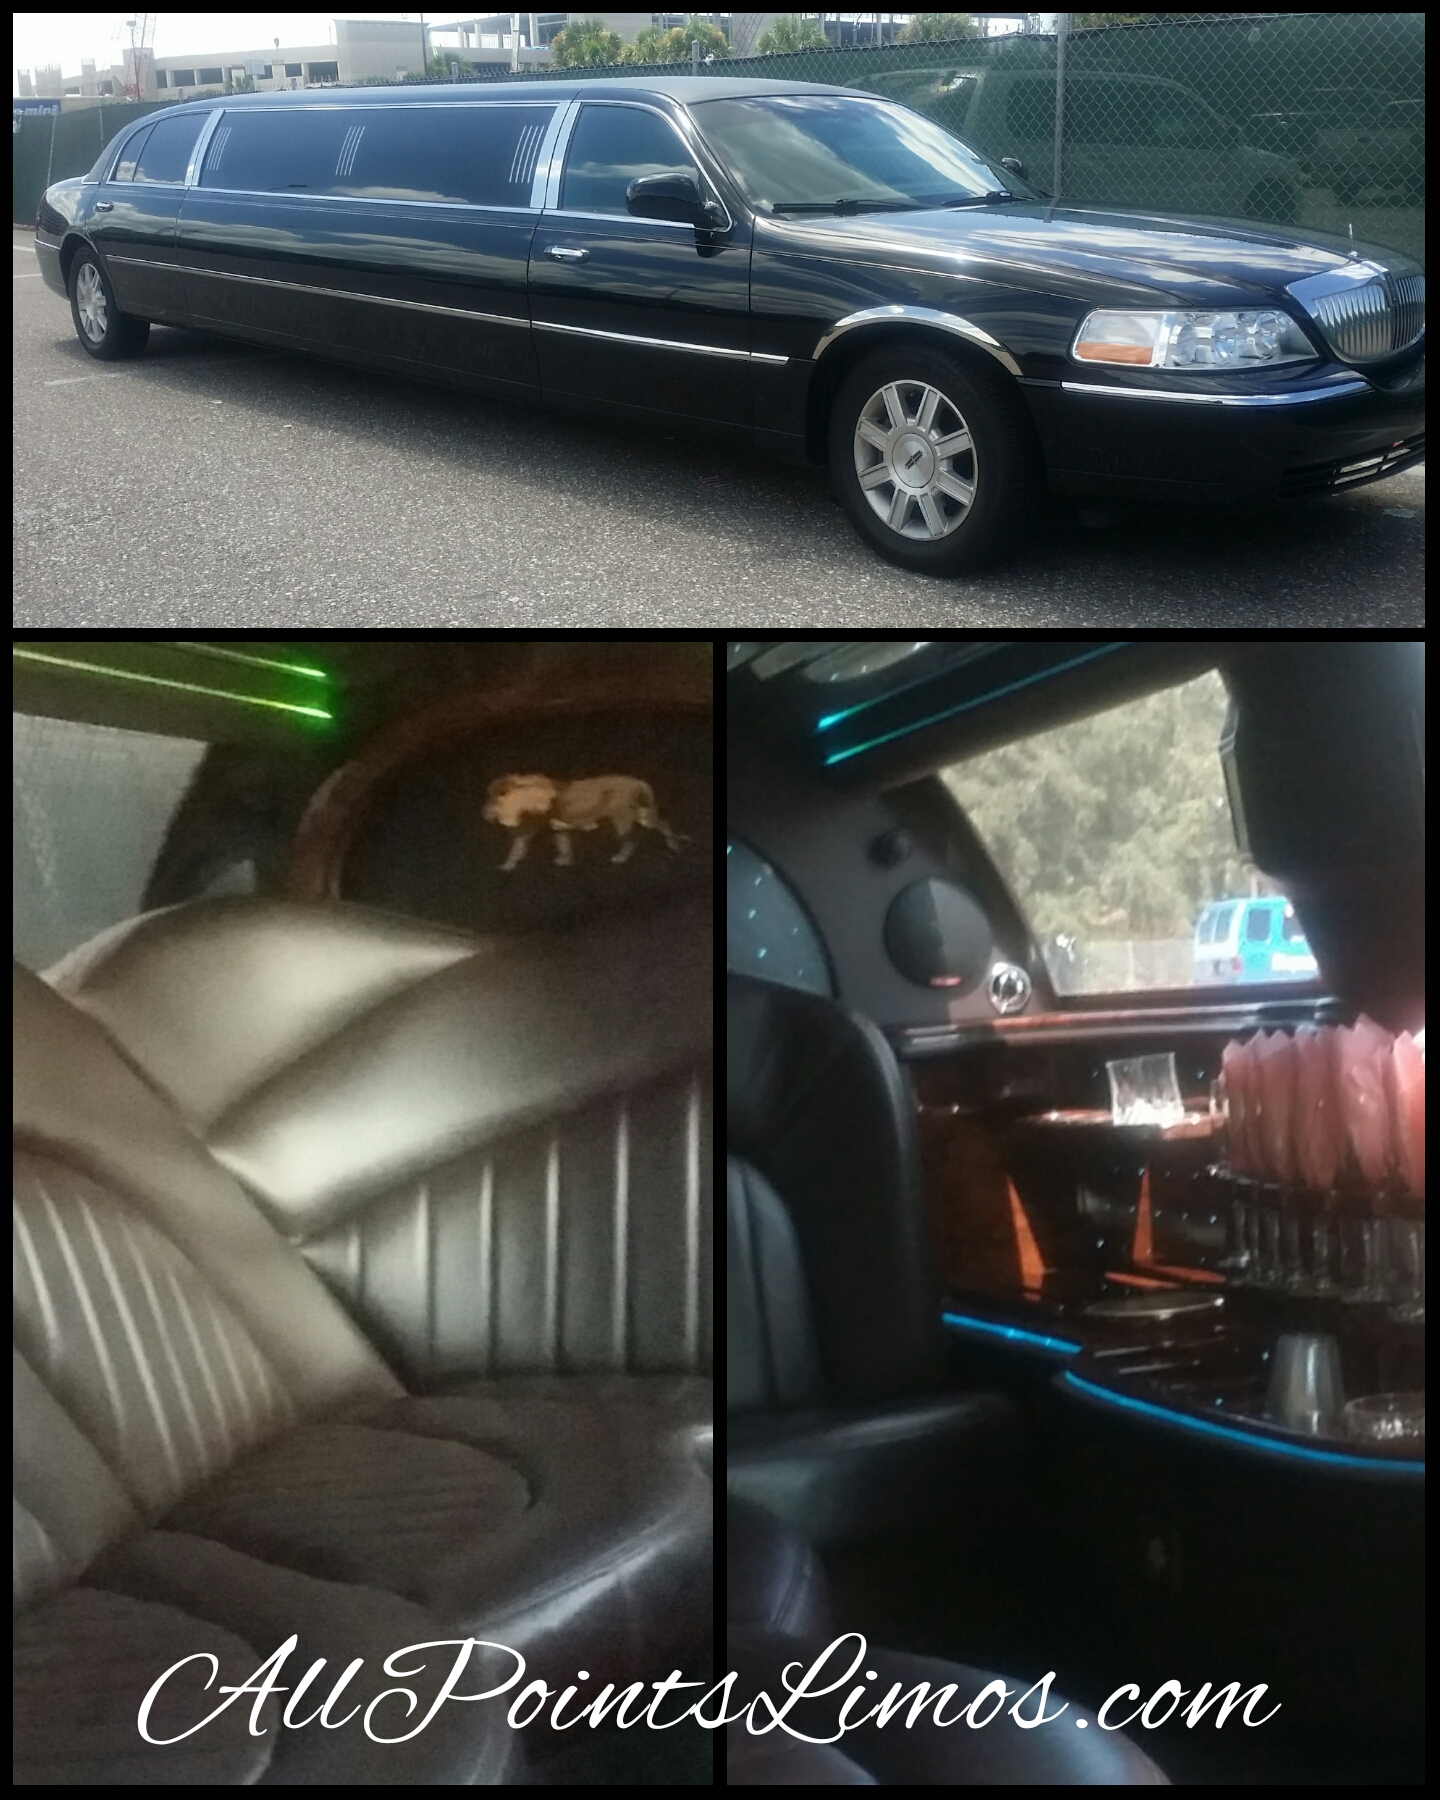 some Chauffeurs for All Points Limousine of St. Petersburg, FL.  have been residents of Pinellas County for many years.  has a very impressive Limo Security back grounds they Love helping others.